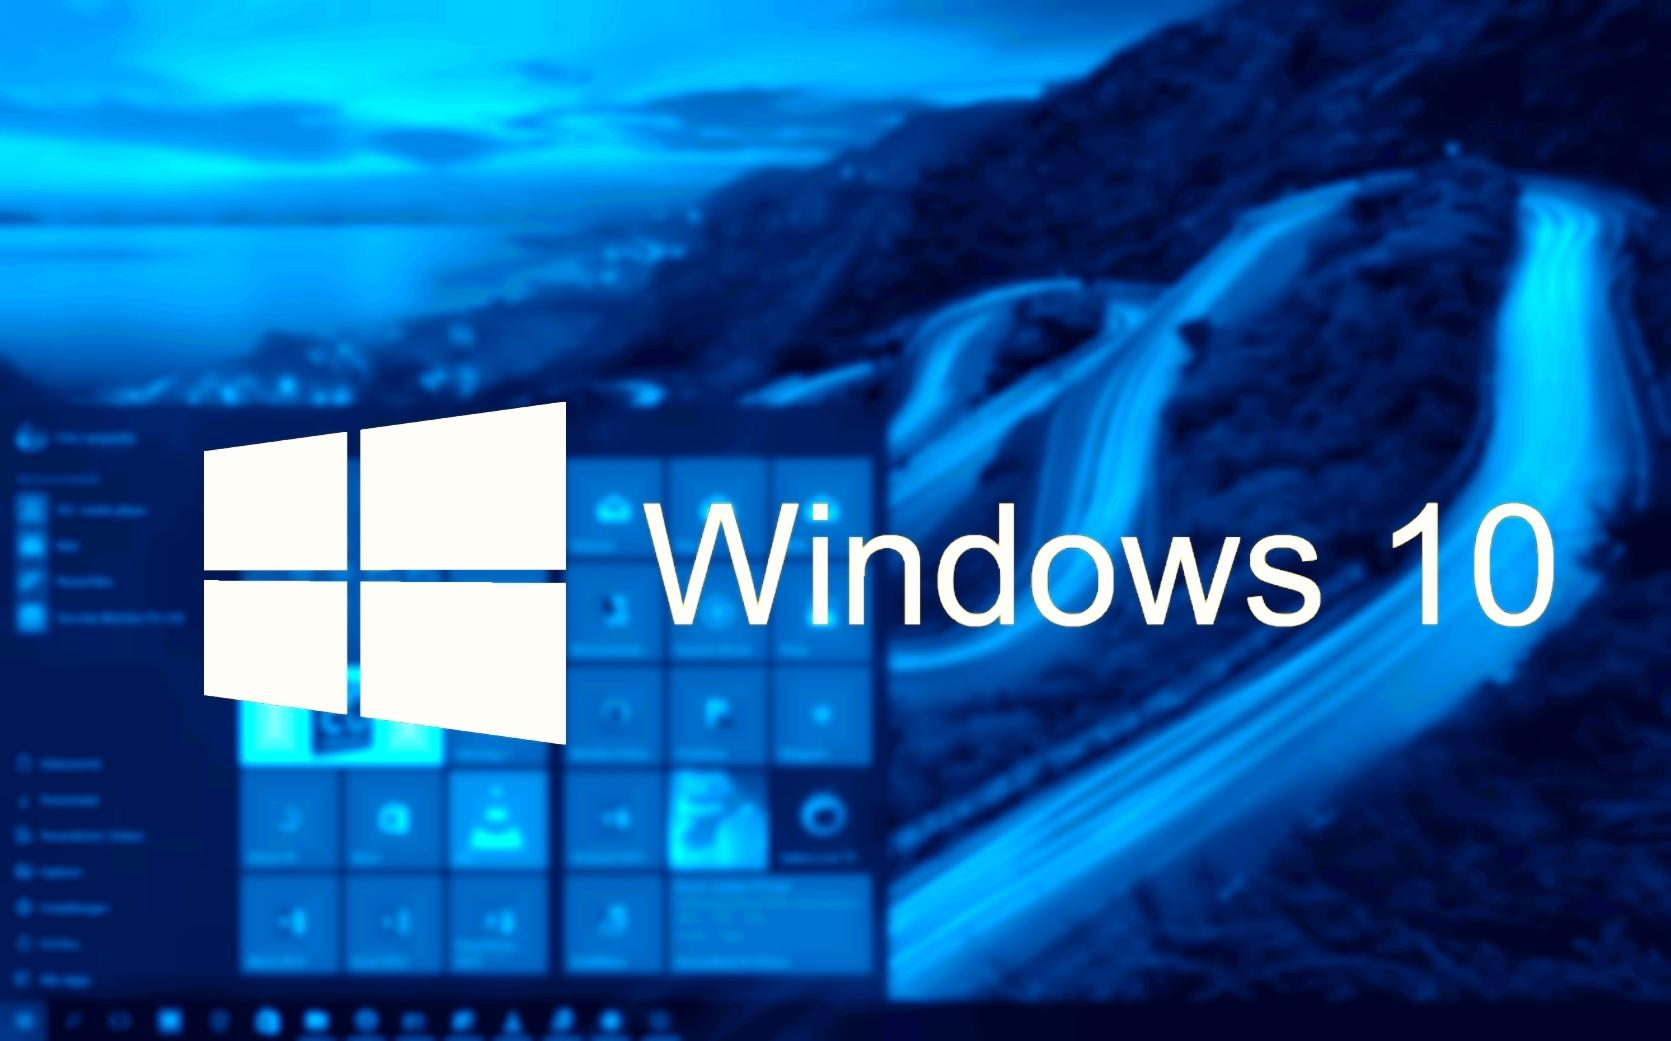 Windows 10 Build 10576 Update